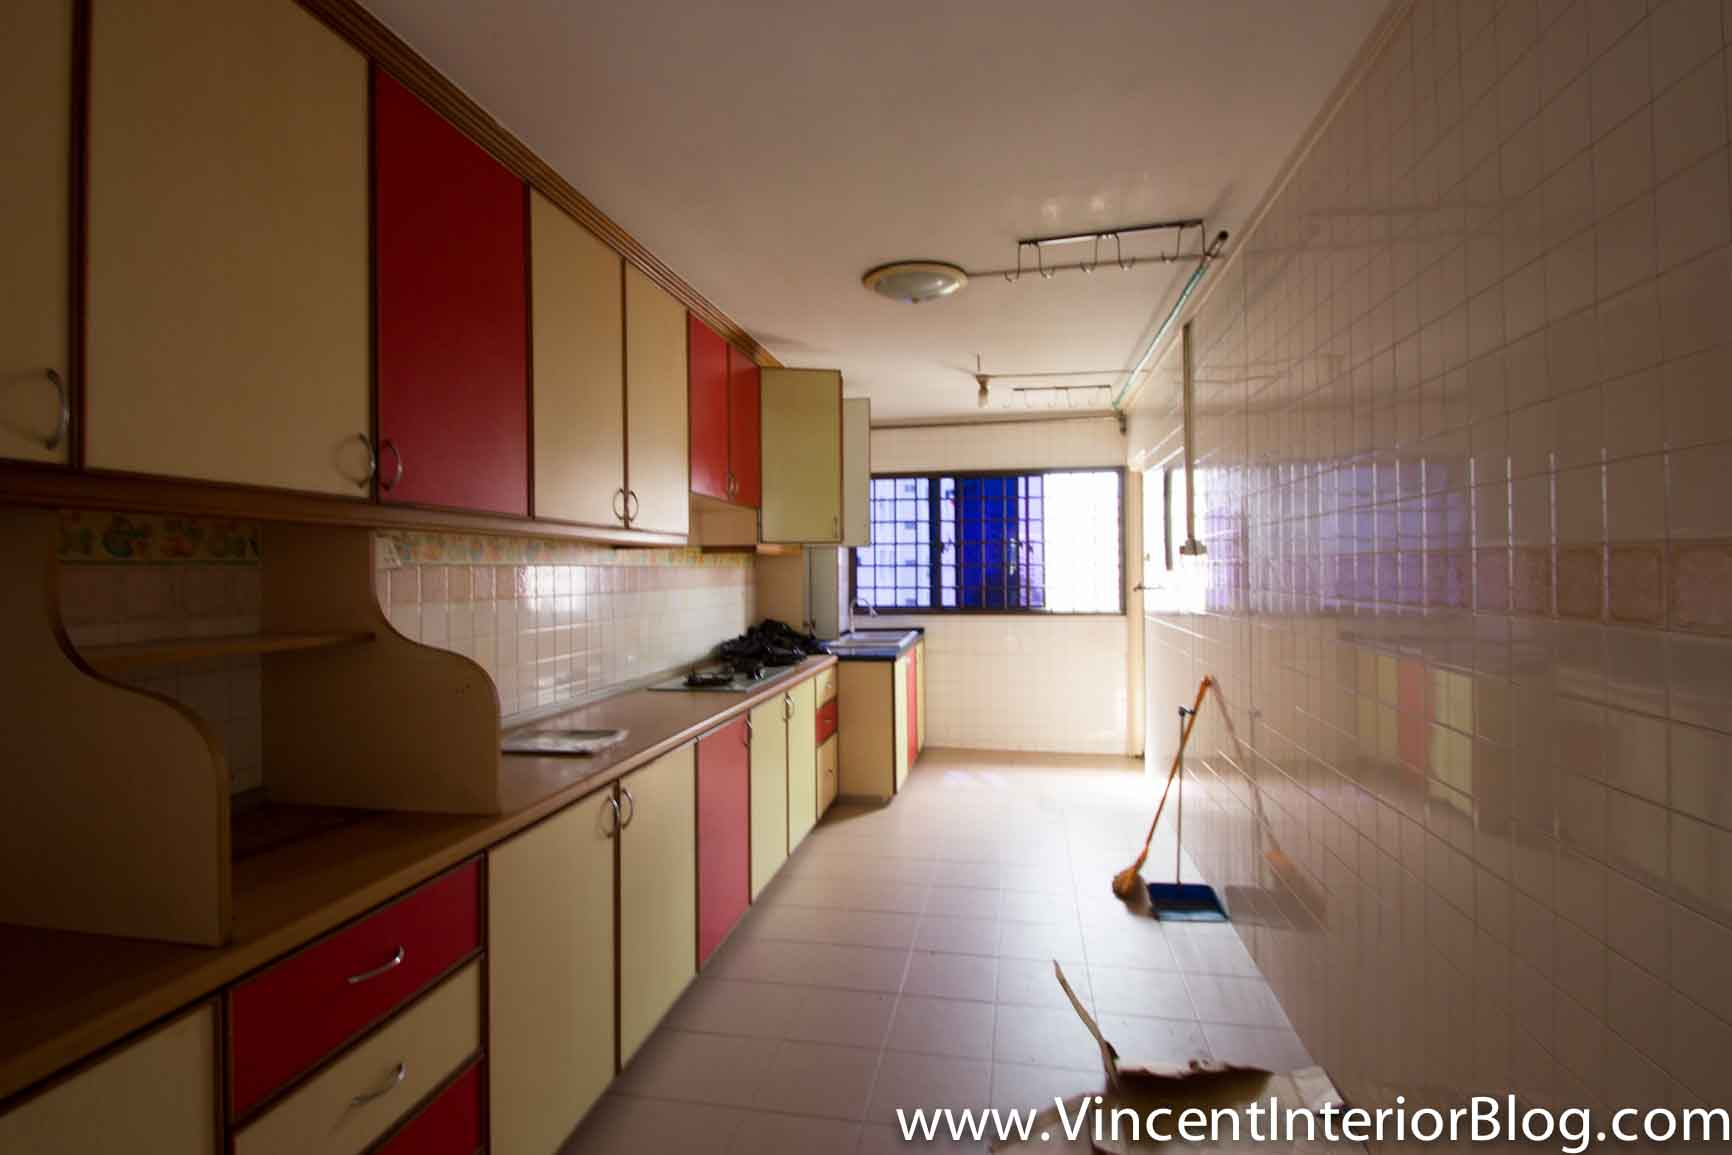 Hdb 5 Room Kitchen Design palestencom